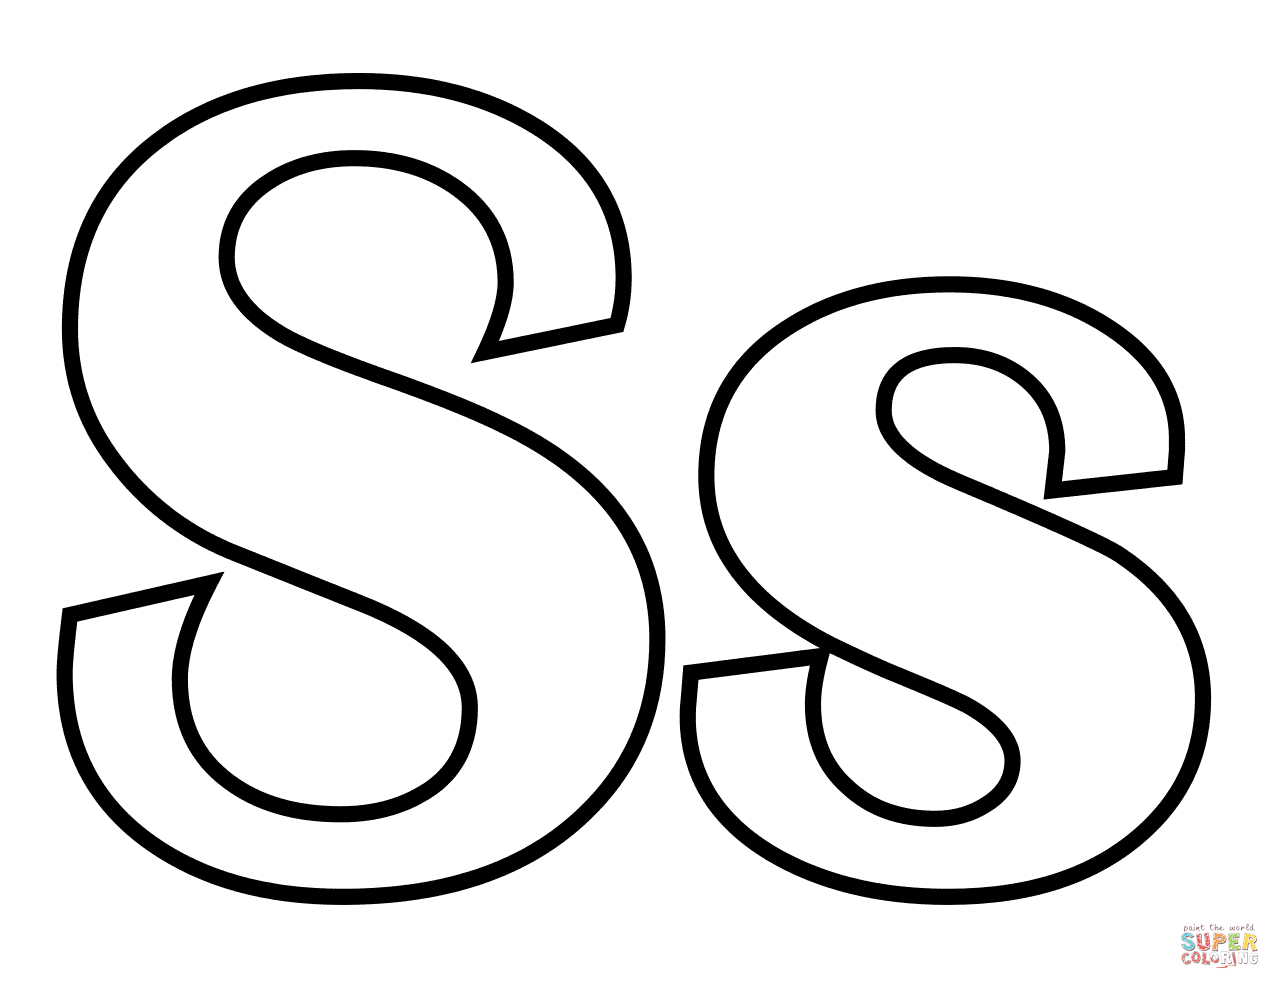 1280x989 Classic Letter S Coloring Page Free Printable Coloring Pages